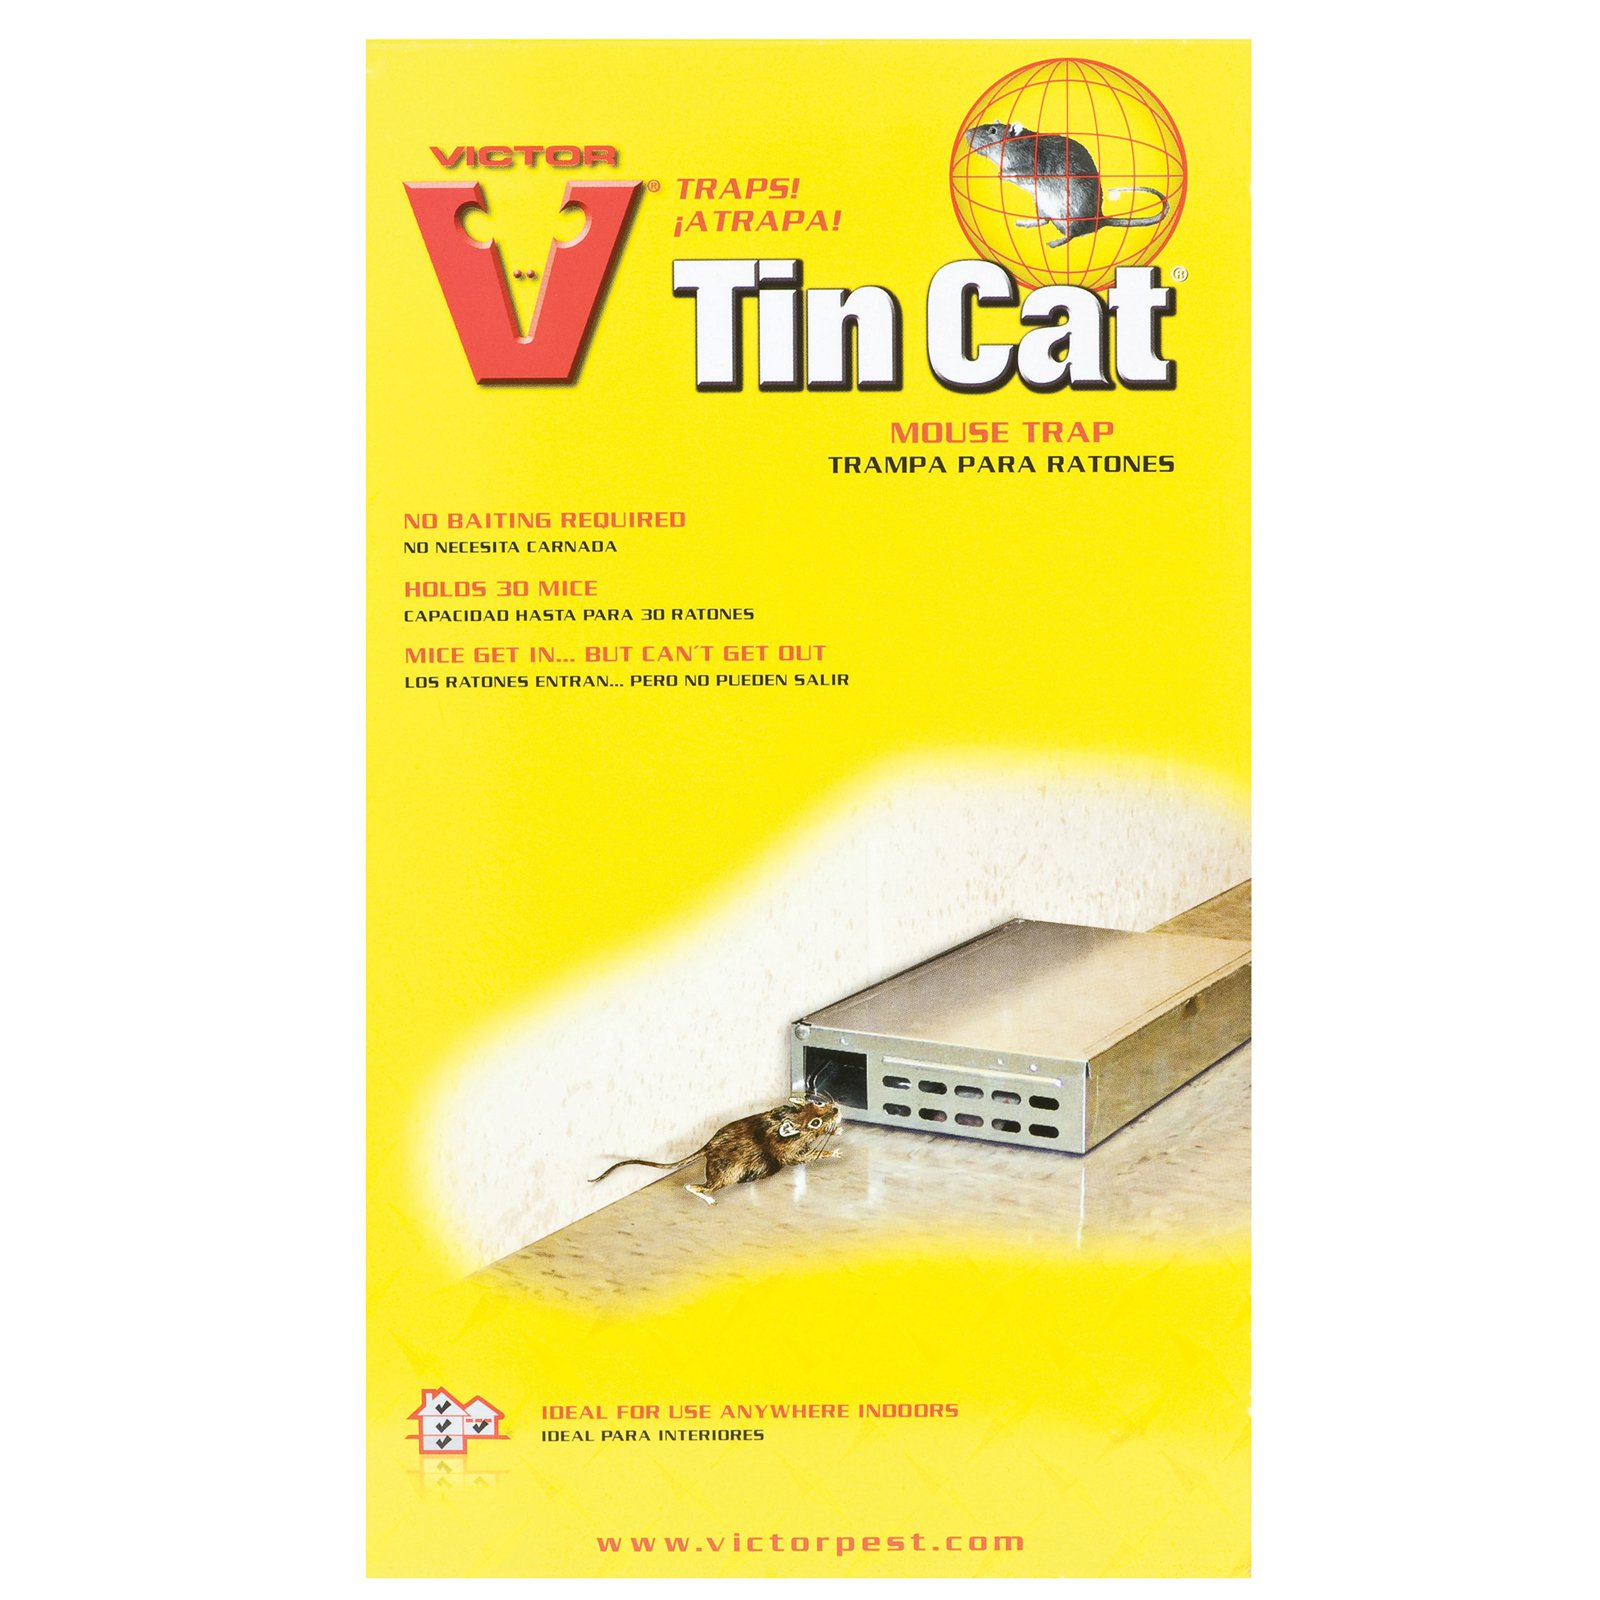 Victor M310S Tin Cat Live Catch Mouse Trap